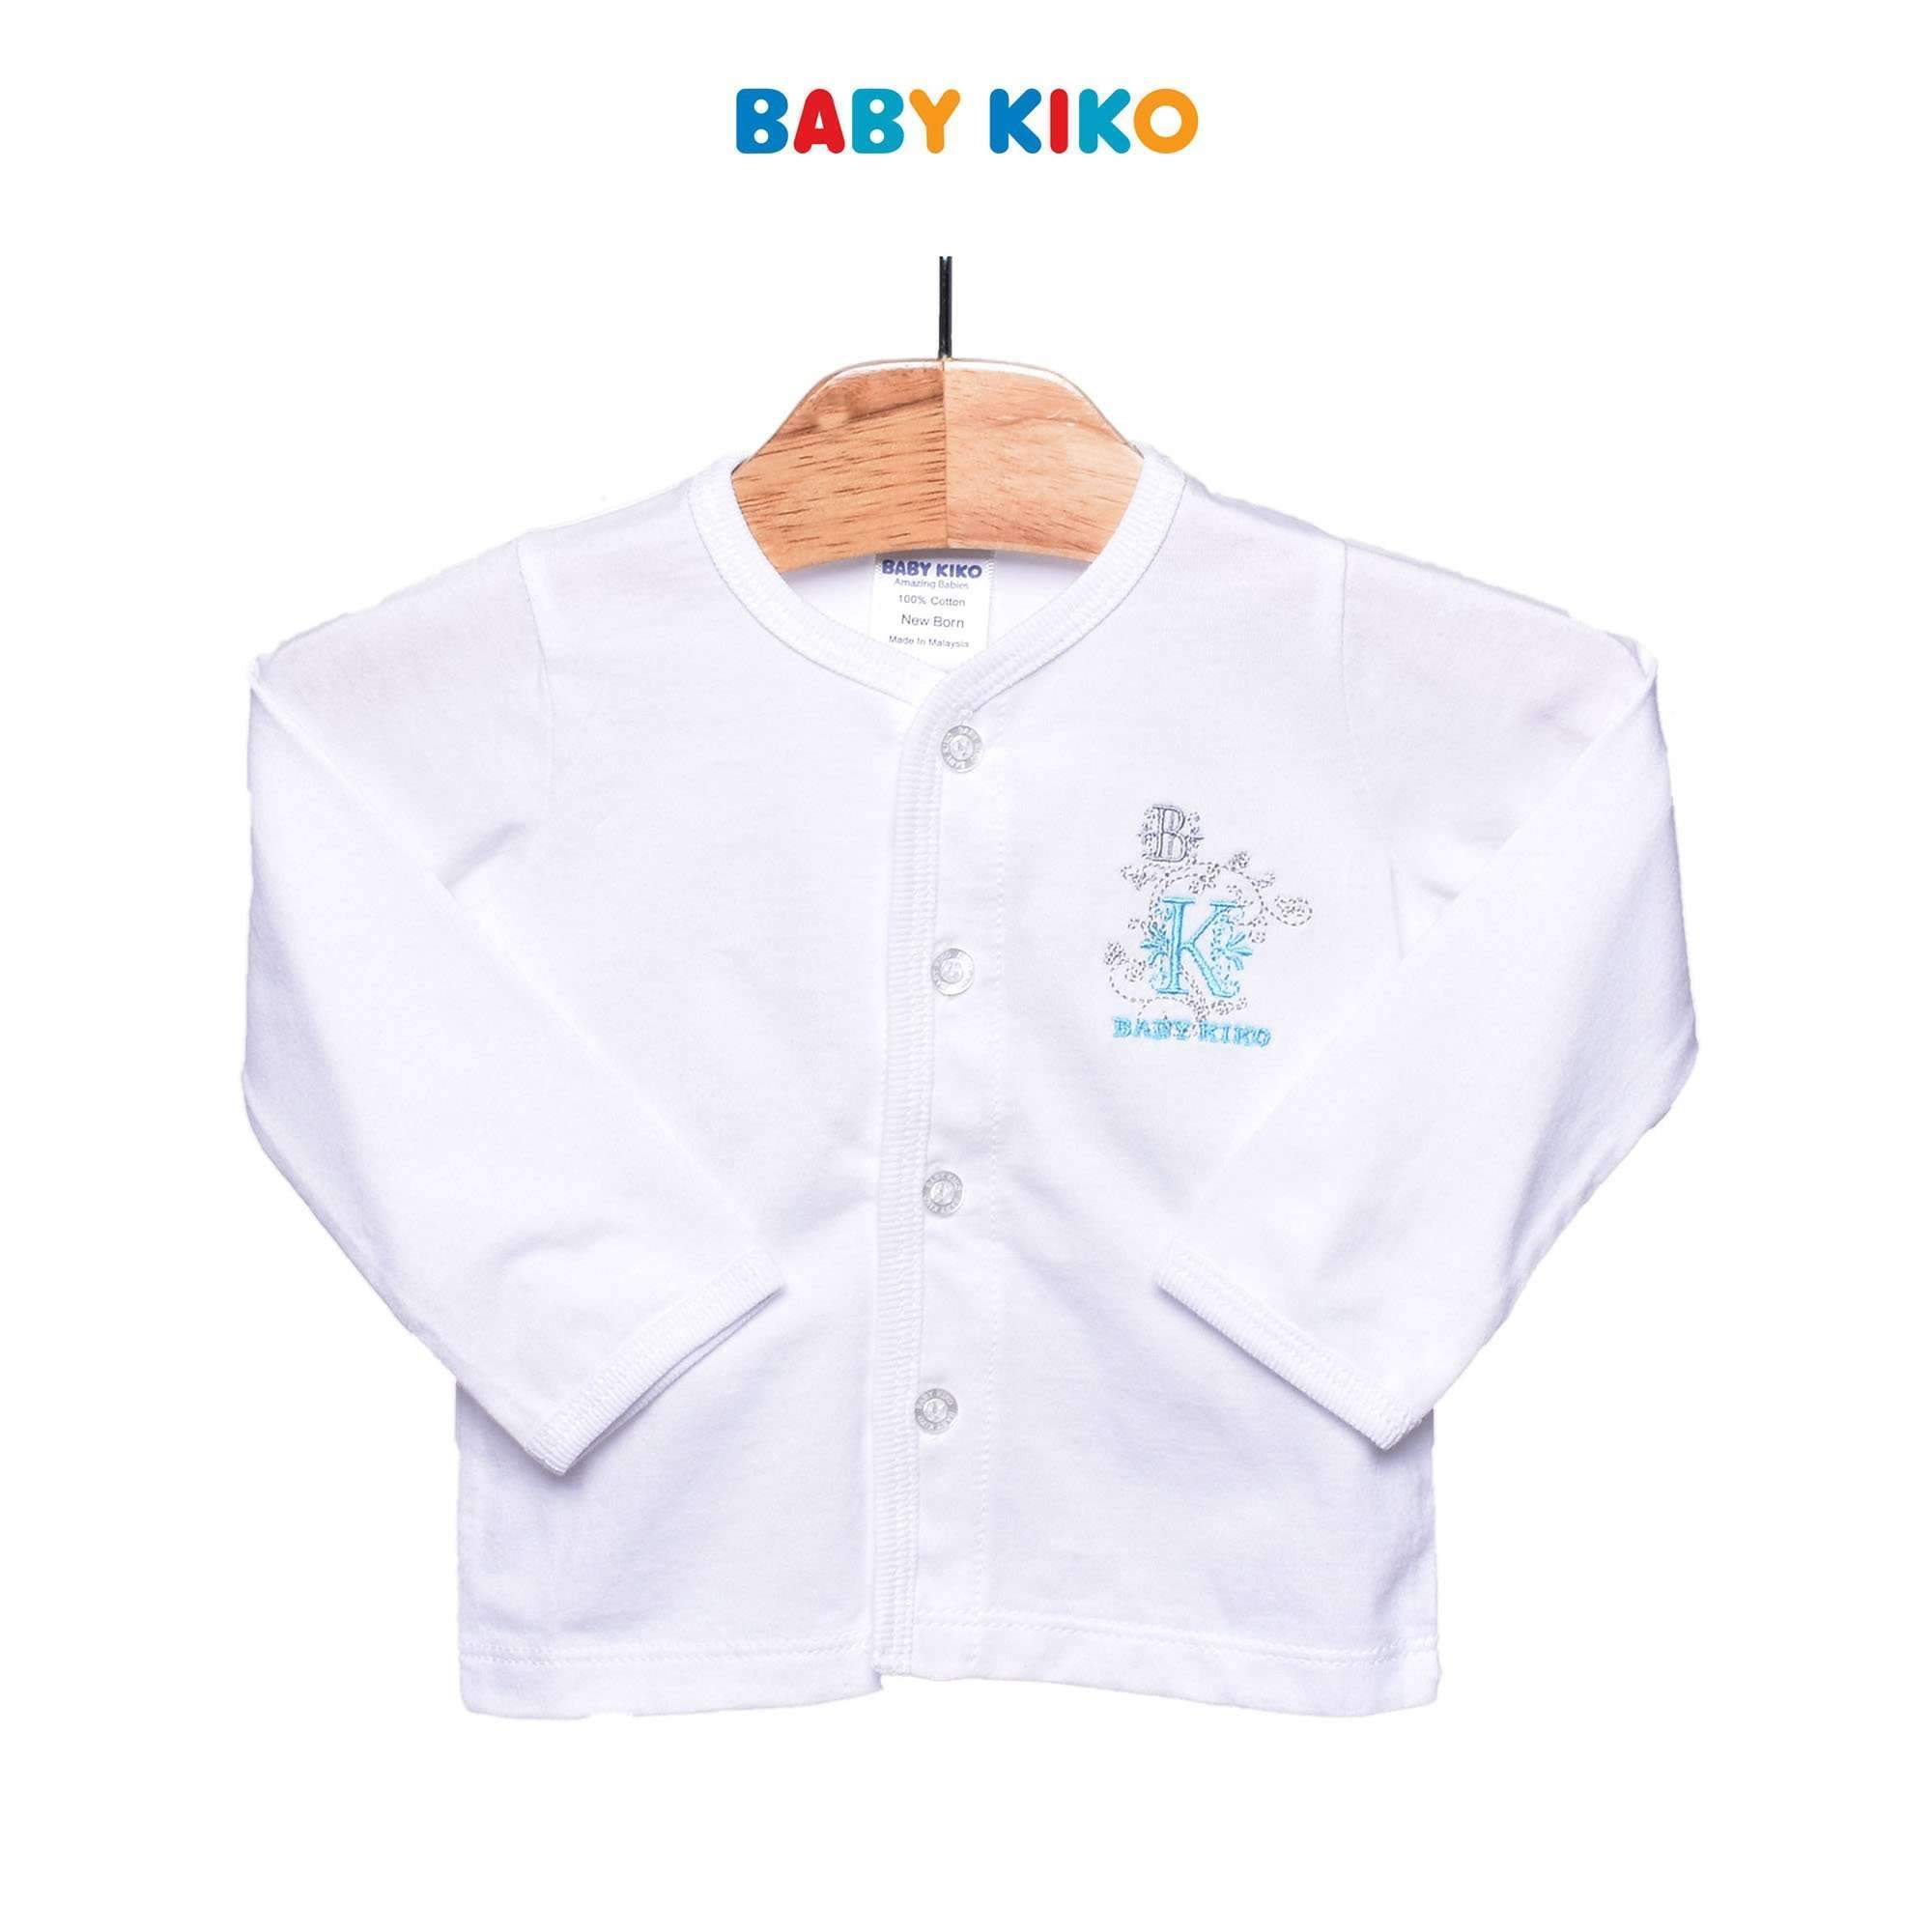 Baby KIKO Baby Boy Long Sleeve Tee - White 310037-131 : Buy Baby KIKO online at CMG.MY